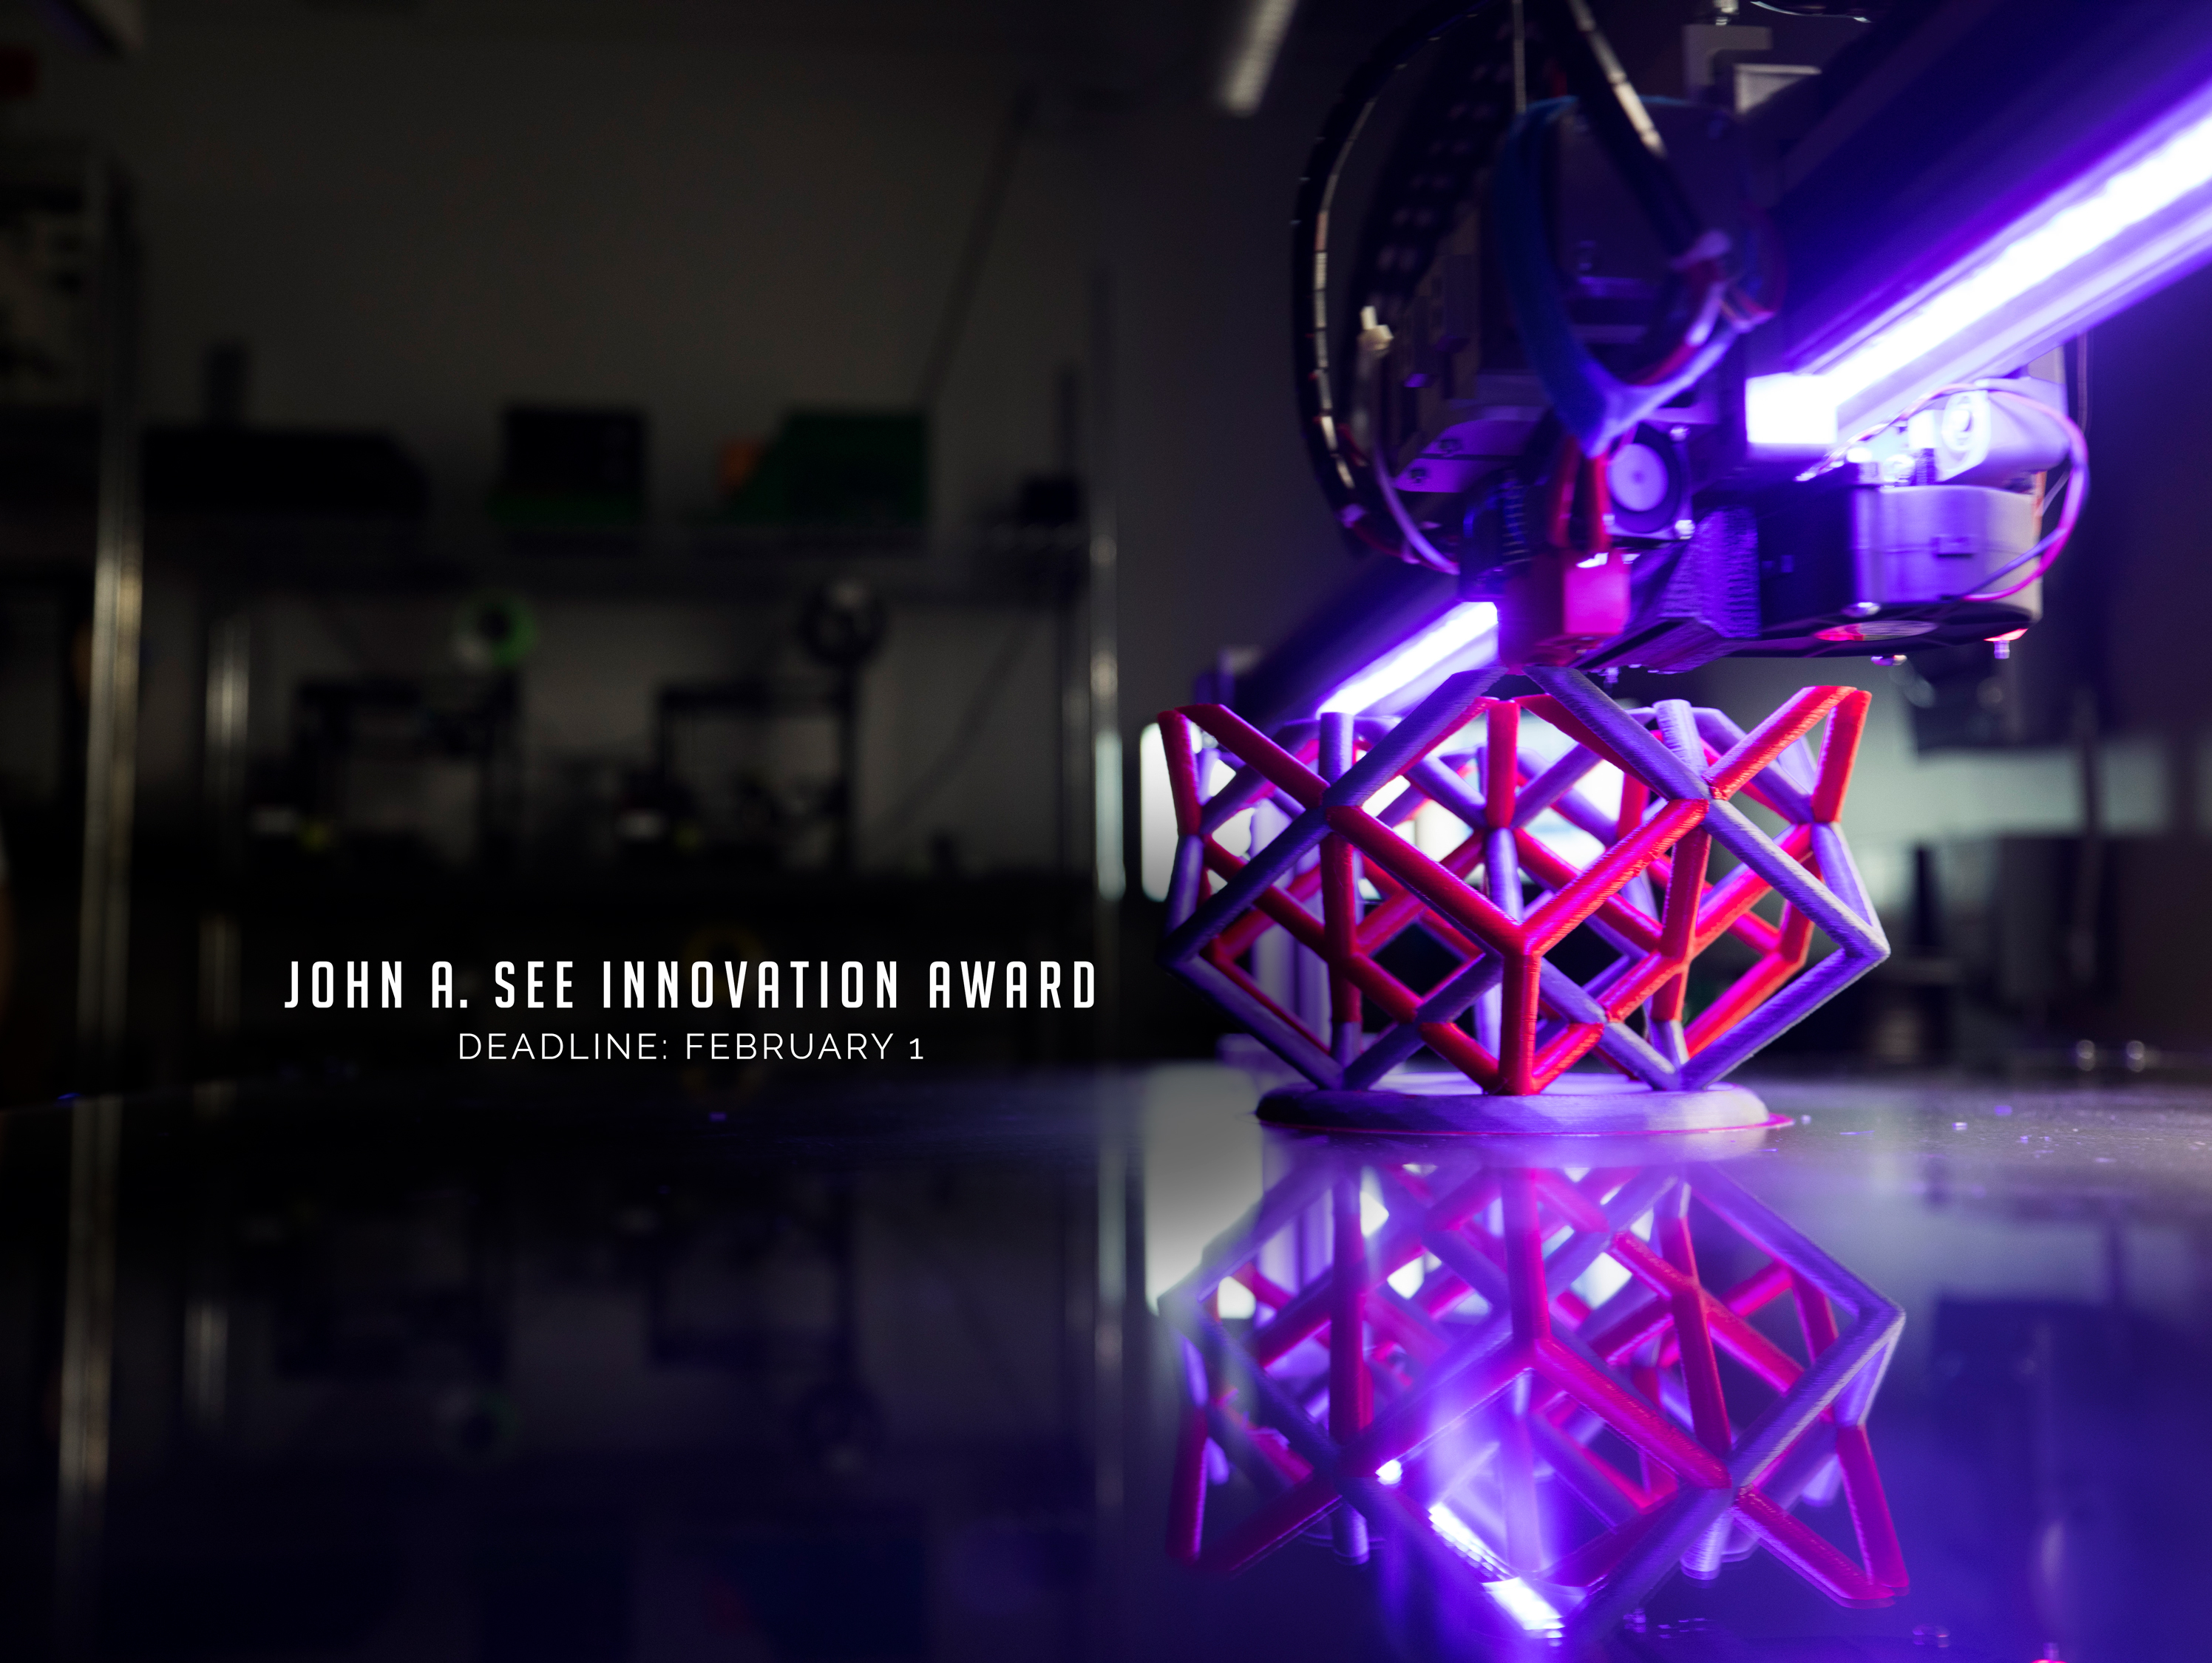 John See Innovation Award